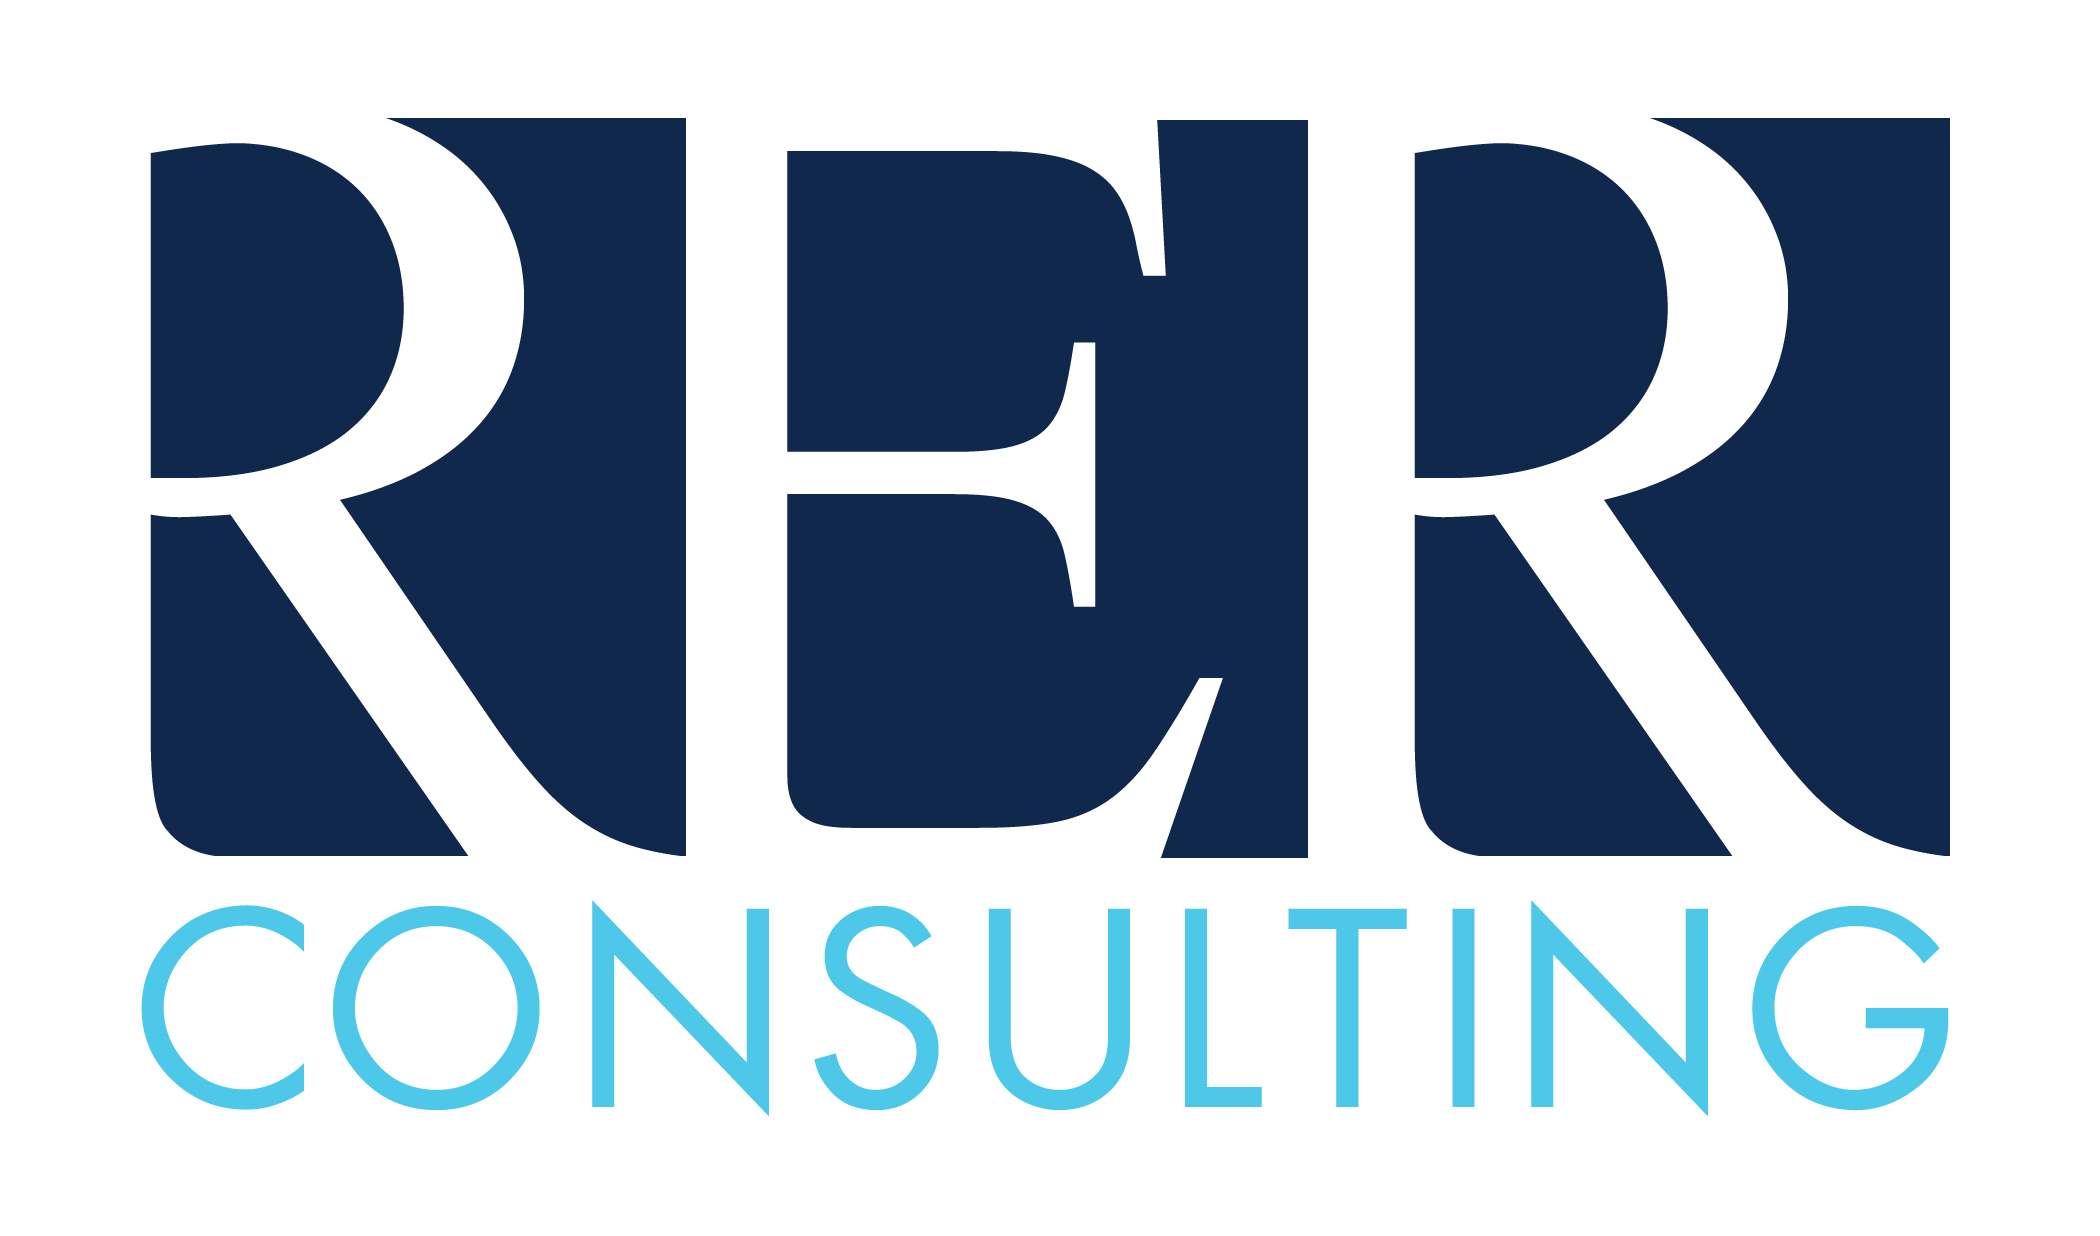 Rer Consulting Logo  Notion Motion Llc. Plaque Lettering. The Amazing Spider Man Logo. Wira Decals. December 5 Signs Of Stroke. Cursive Letter Lettering. Paint Decals. Combat Decals. Miniature Stickers